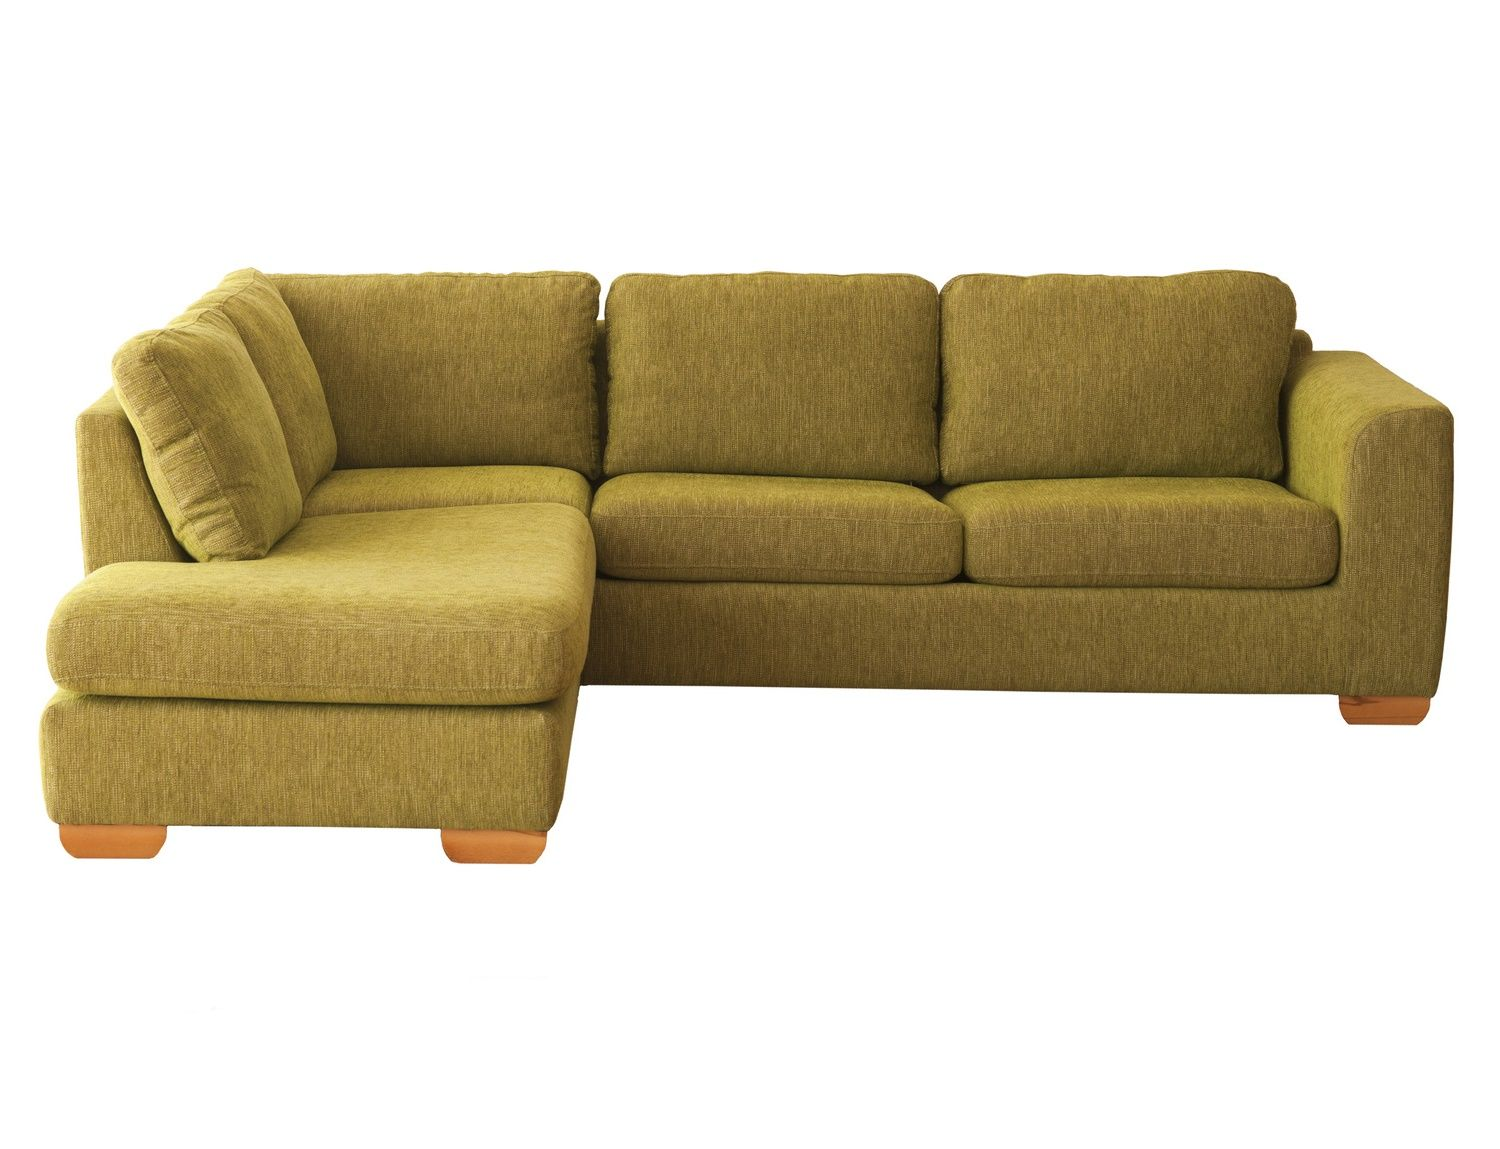 Awesome Sofa With Lounger Outstanding 75 On Modern Ideas